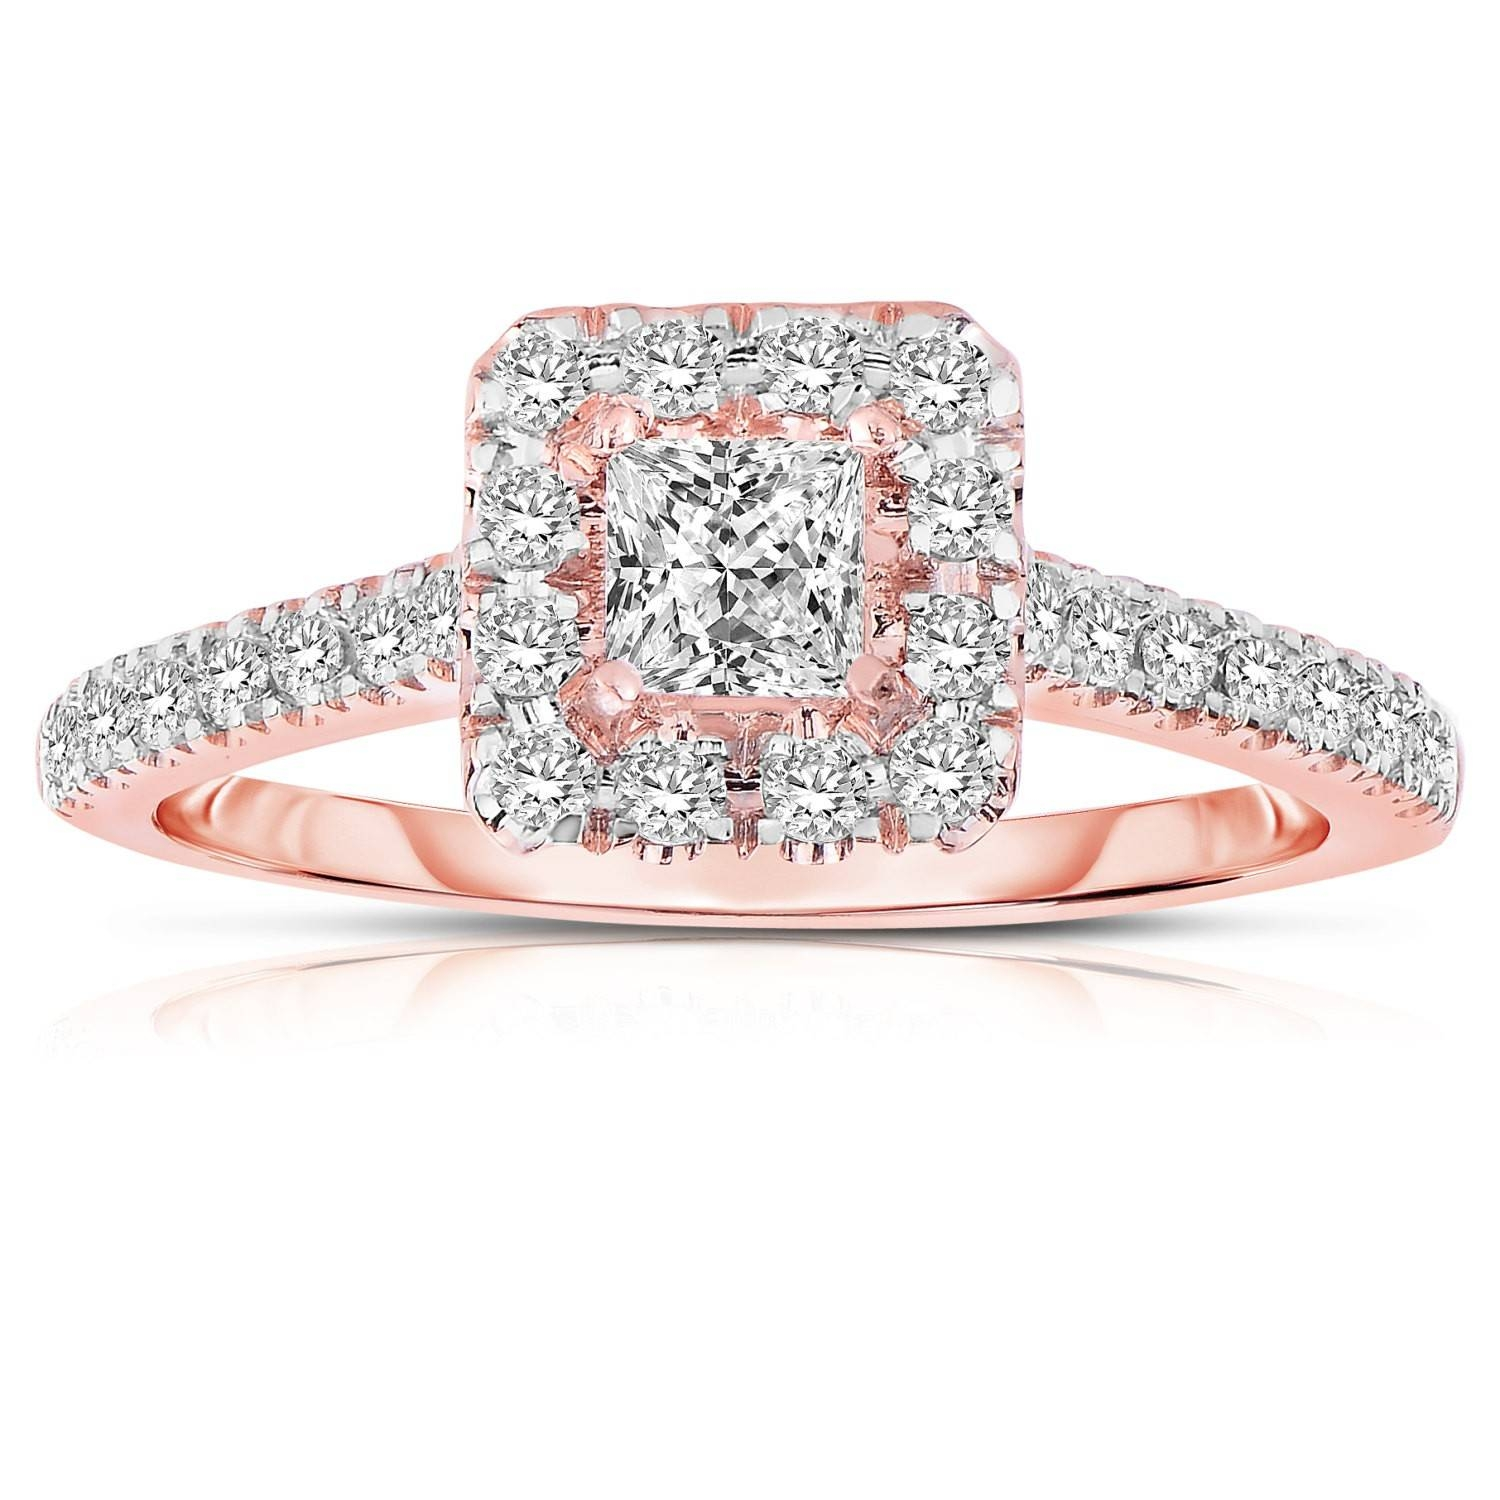 Half Carat Princess Cut Halo Diamond Engagement Ring In Rose Gold Intended For Walmart Princess Cut Engagement Rings (View 6 of 15)